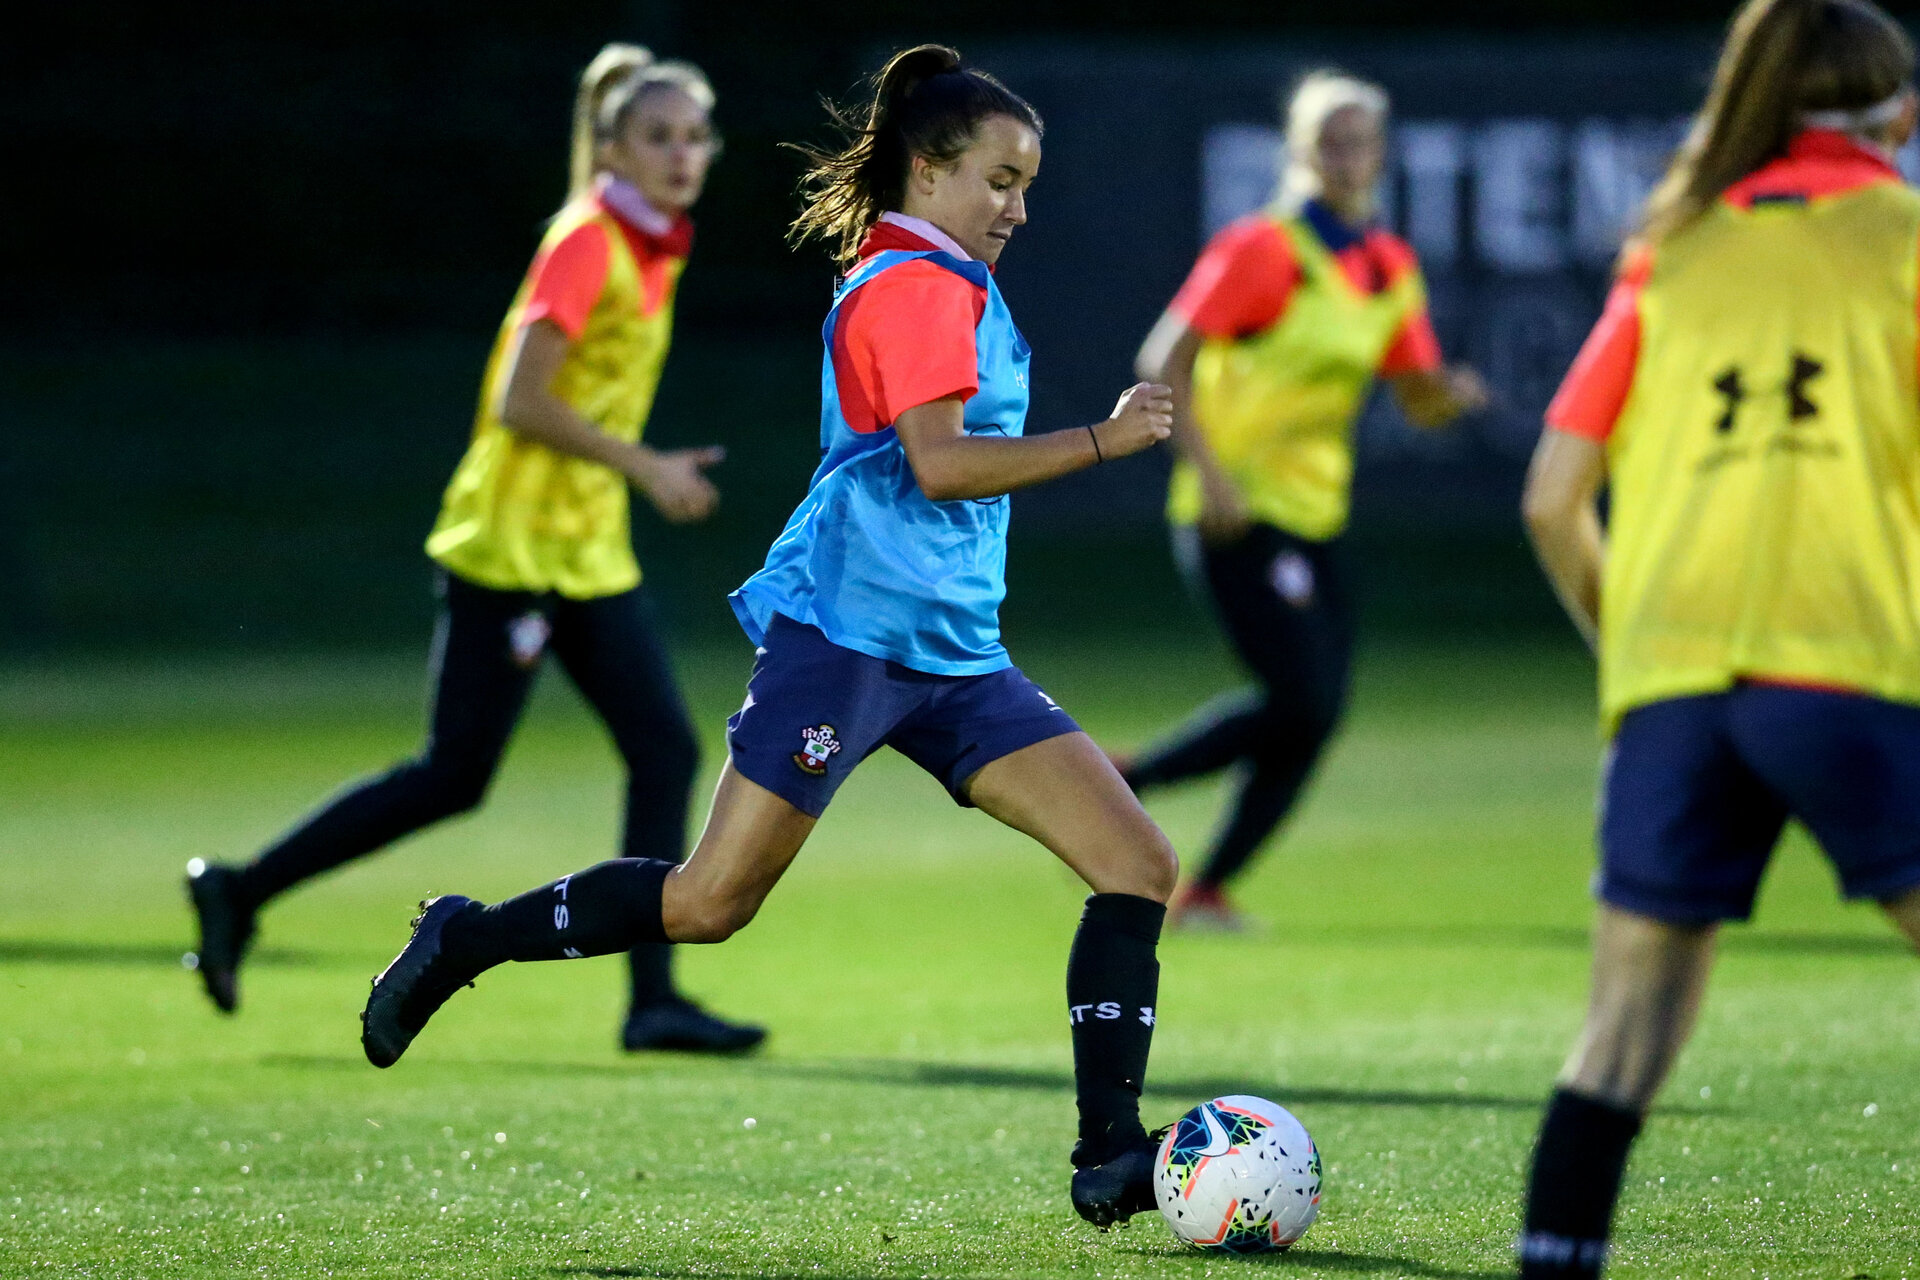 LONDON, ENGLAND - SEPTEMBER 10: Sophia Pharoah during women's training session Staplewood Training Ground on September 10, 2020 in Southampton, United Kingdom. (Photo by Isabelle Field/Southampton FC via Getty Images)